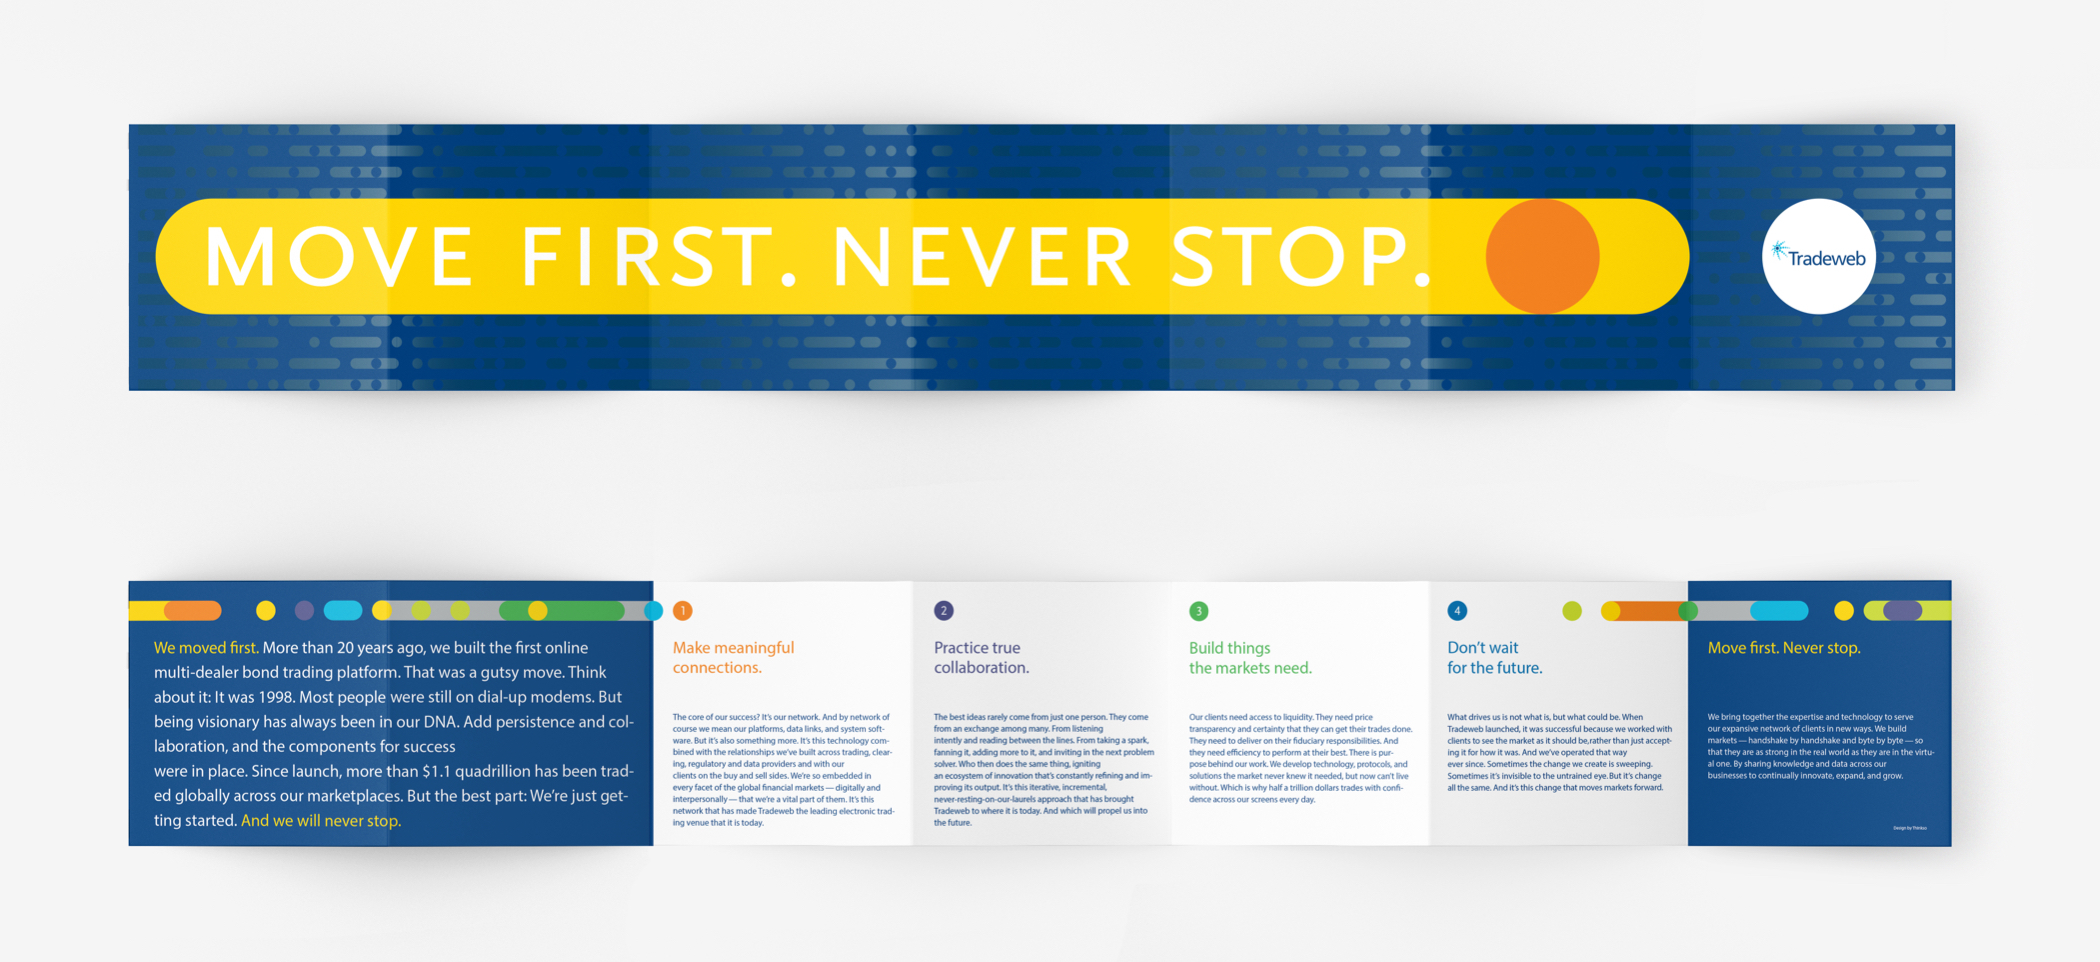 "Inside pages of the Tradeweb employee brand book with the text ""Move first. Never stop"" in large letters."